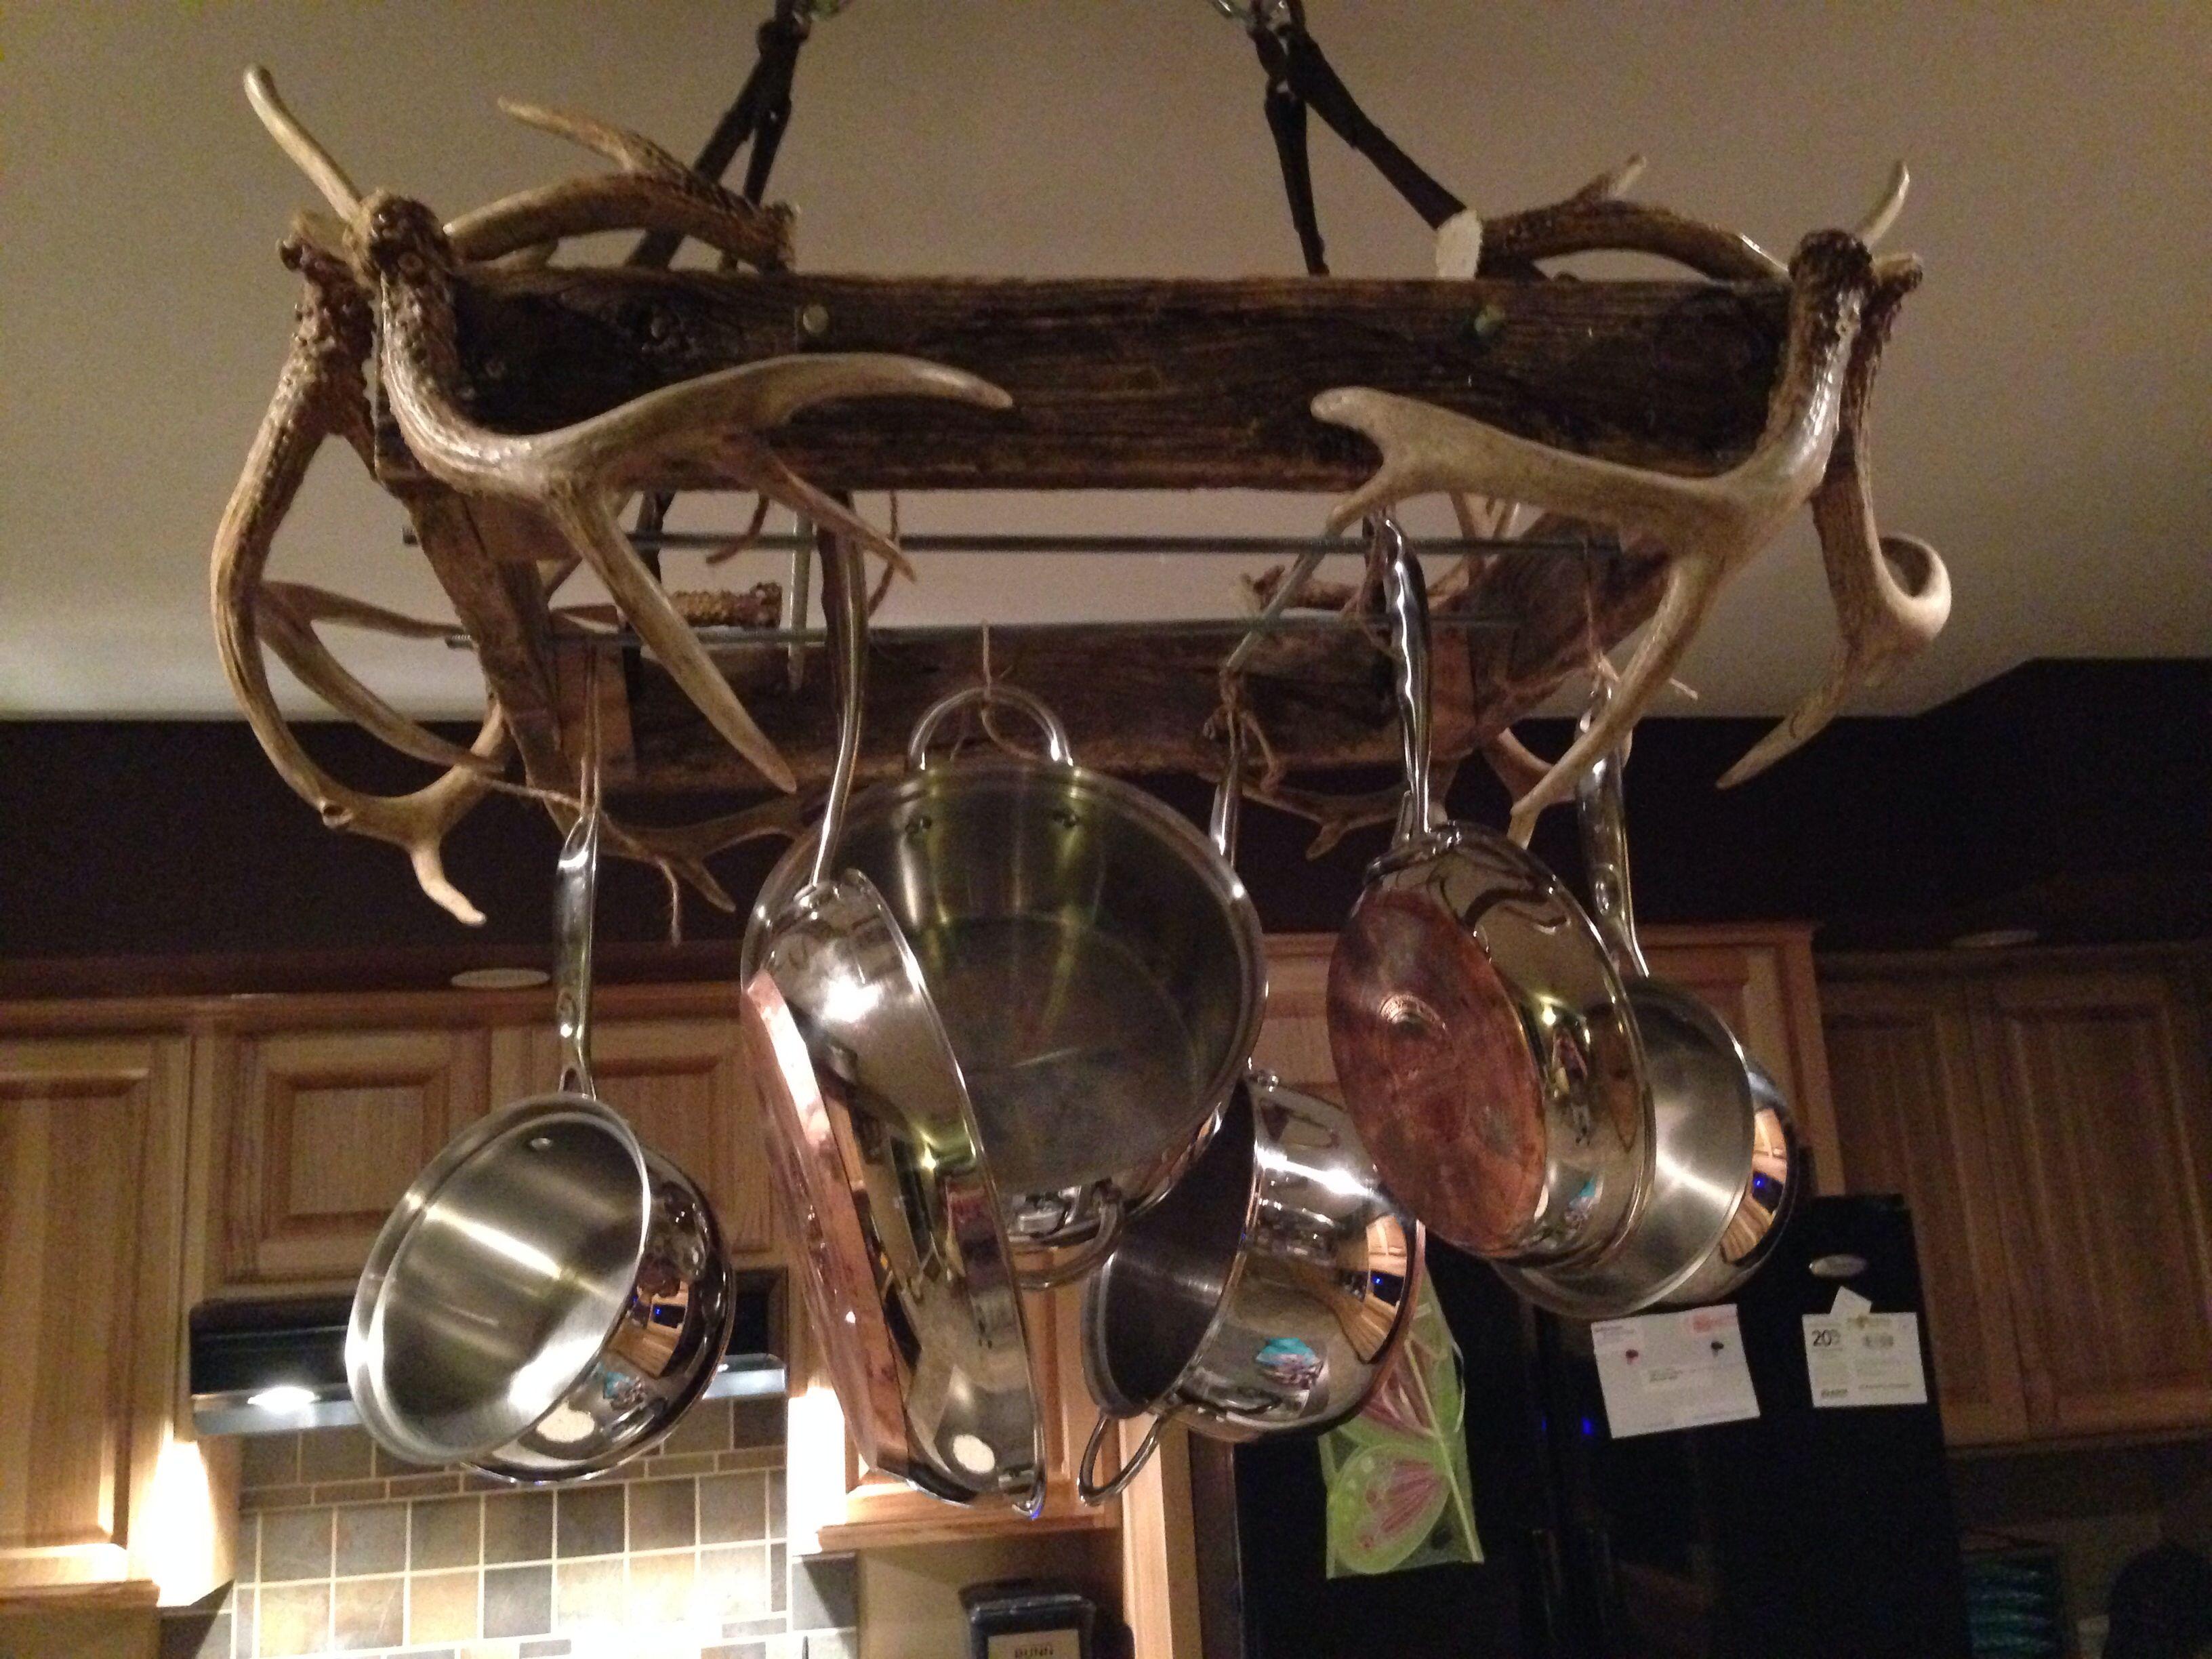 Diy Pan Rack Barn Wood And Antlers In 2019 Pan Rack